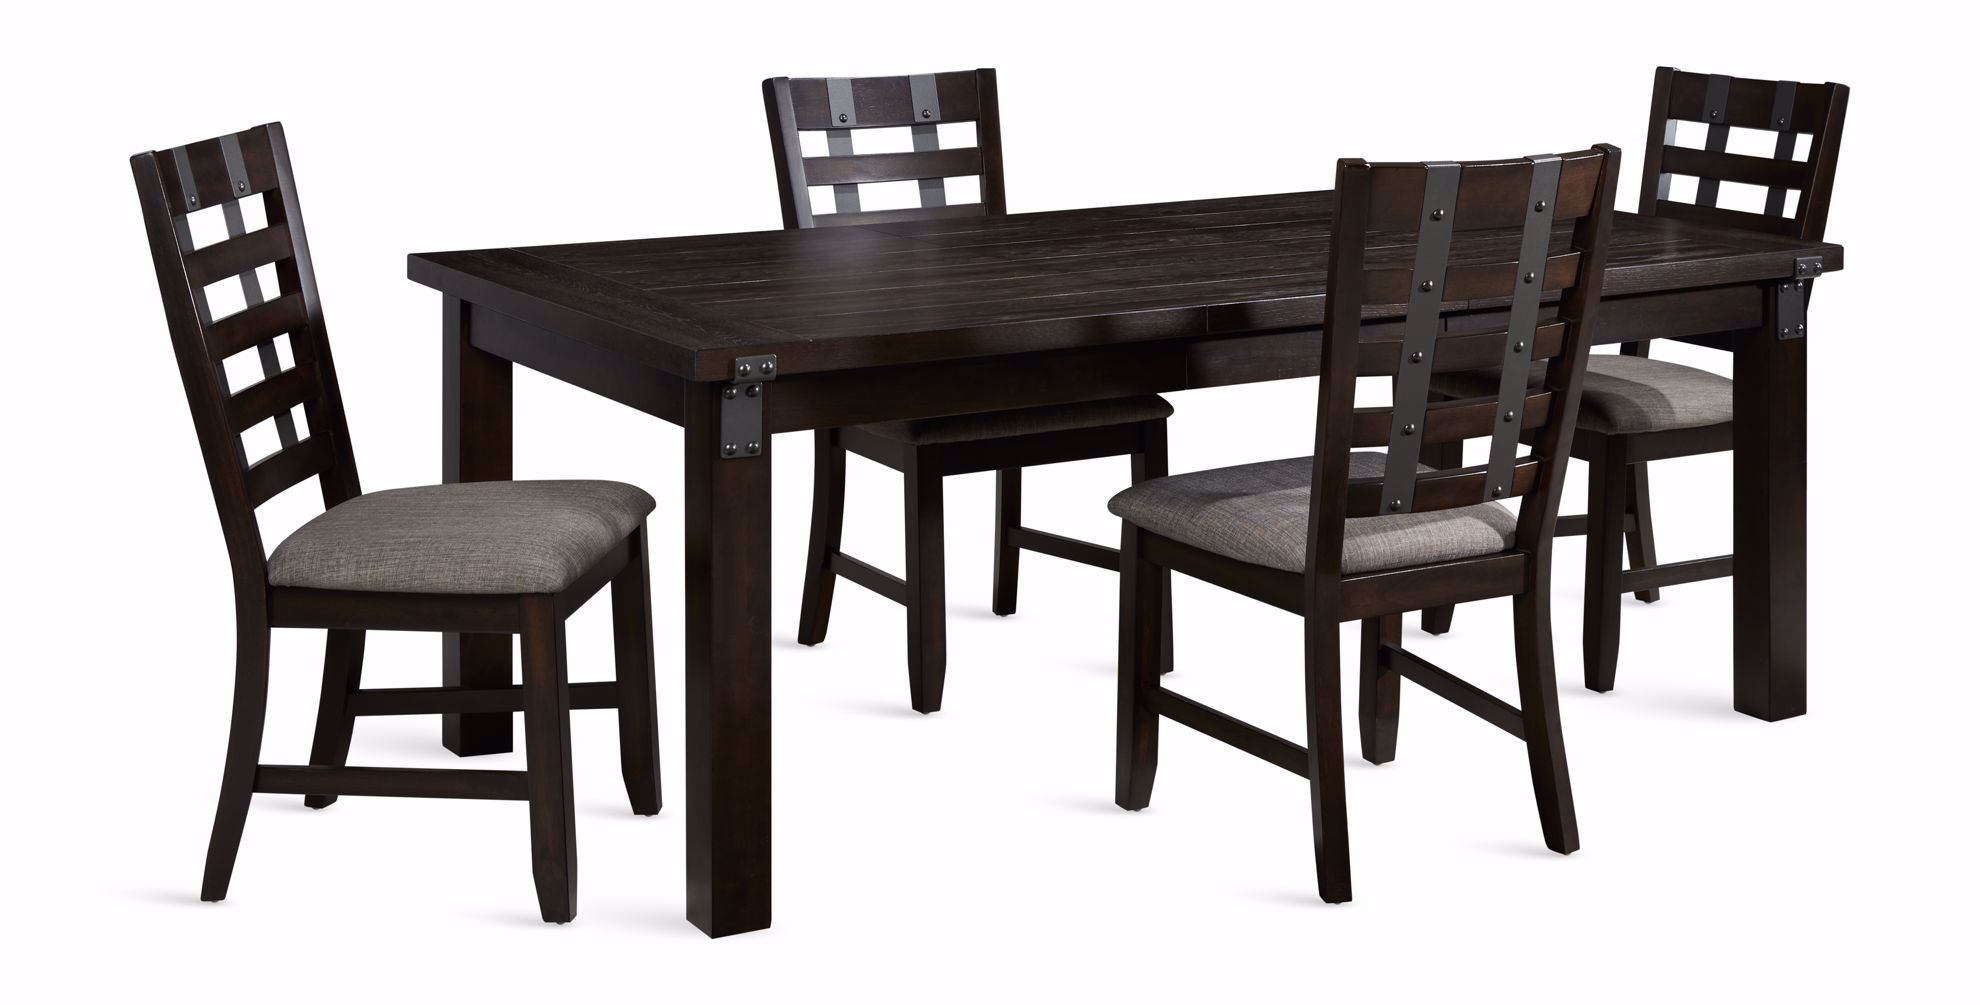 Picture of Astrid Dining Leaf Table with Four Chairs